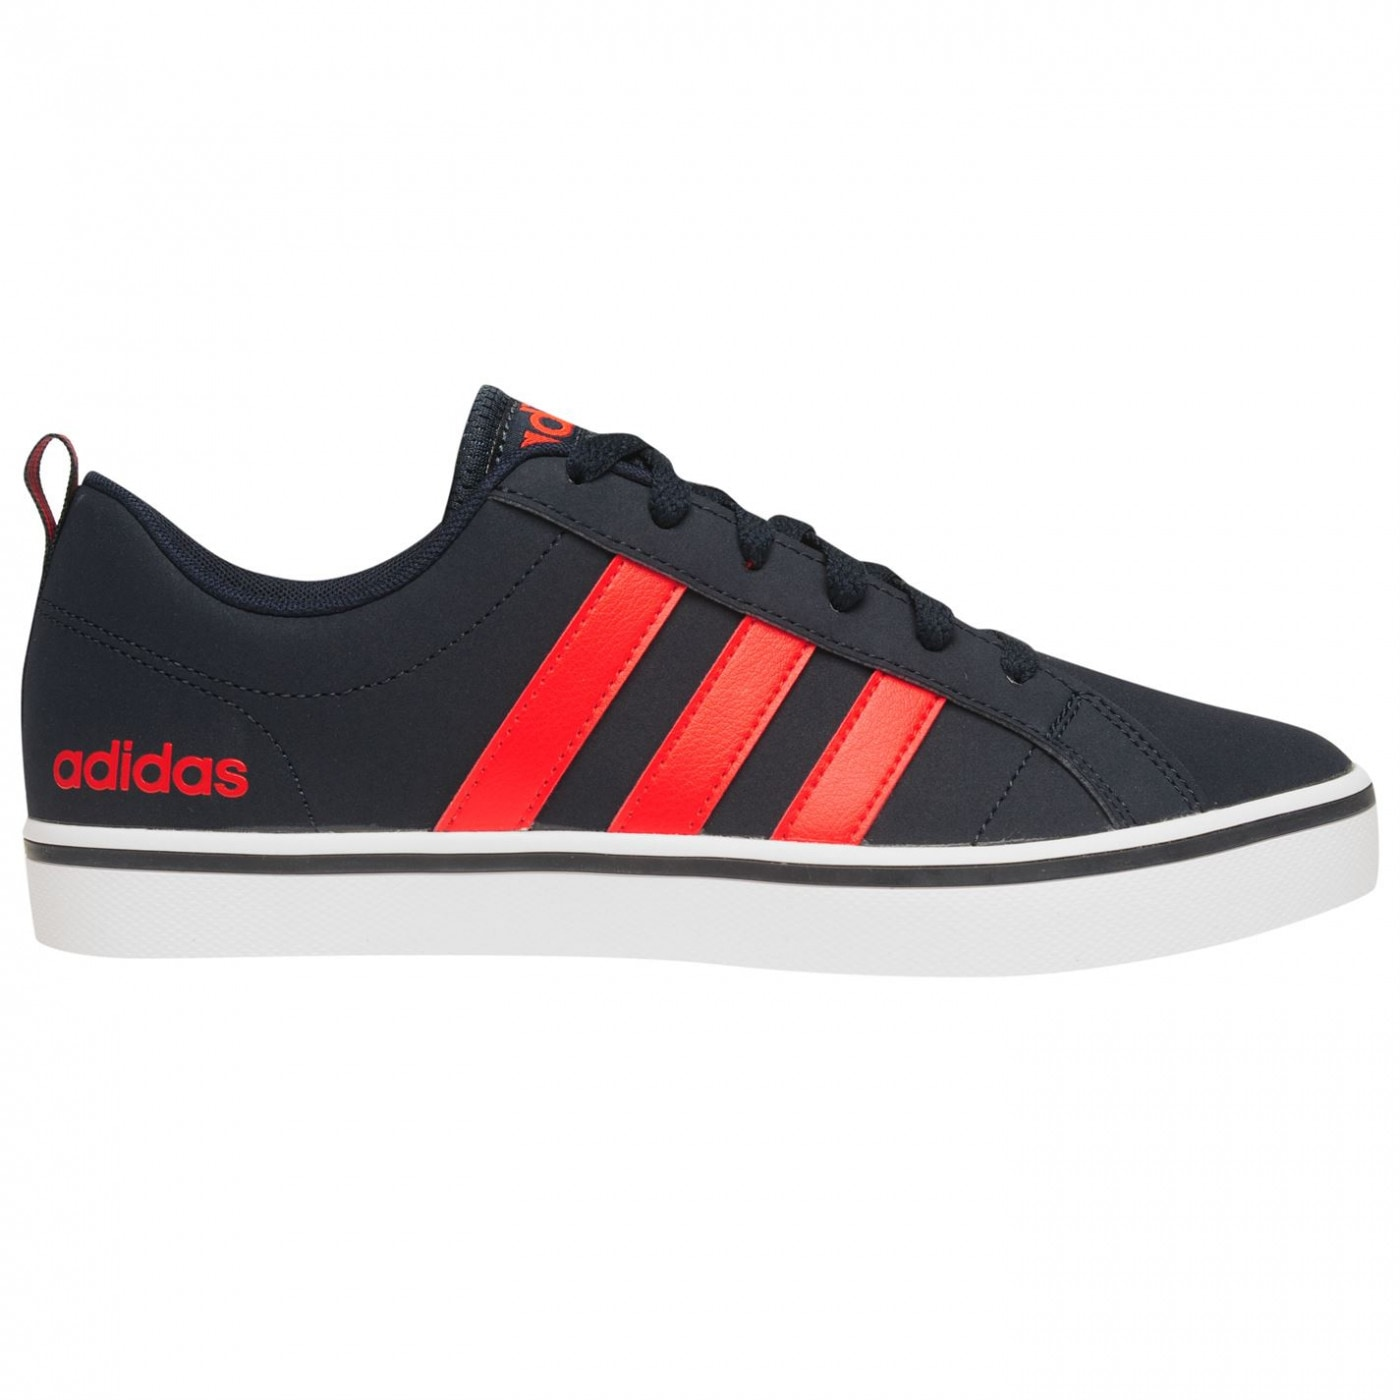 6a6660f16c1 Adidas Pace VS Nubuck Mens Trainers - FACTCOOL